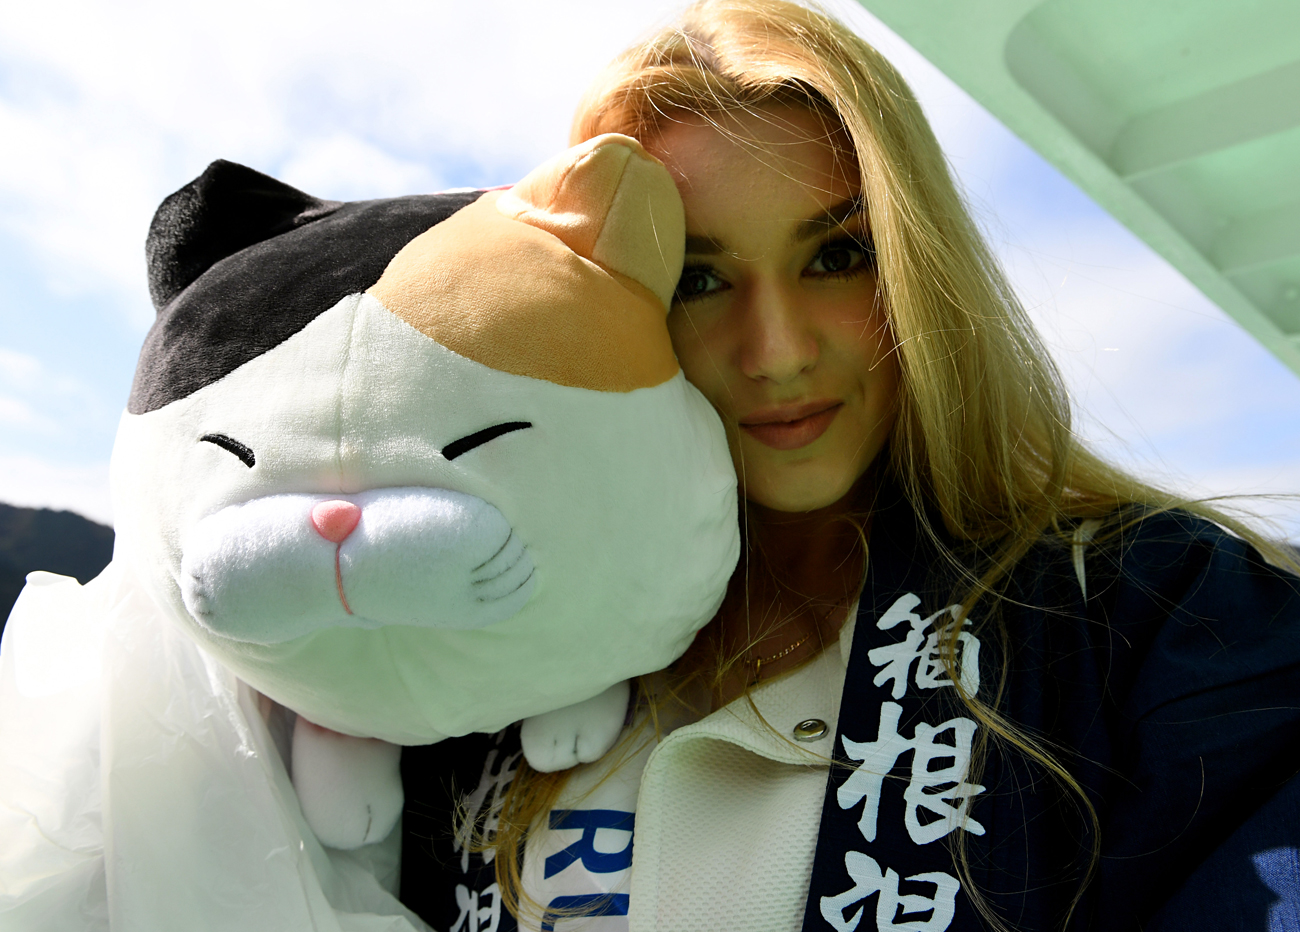 Miss Russia Alisa Manenok shows off her souvenir of a stuffed cat while boarding a boat at the Lake Ashinoko in Hakone town, Kanagawa prefecture. Seventy women will compete for the 2016 Miss International crown in Tokyo on October 27.